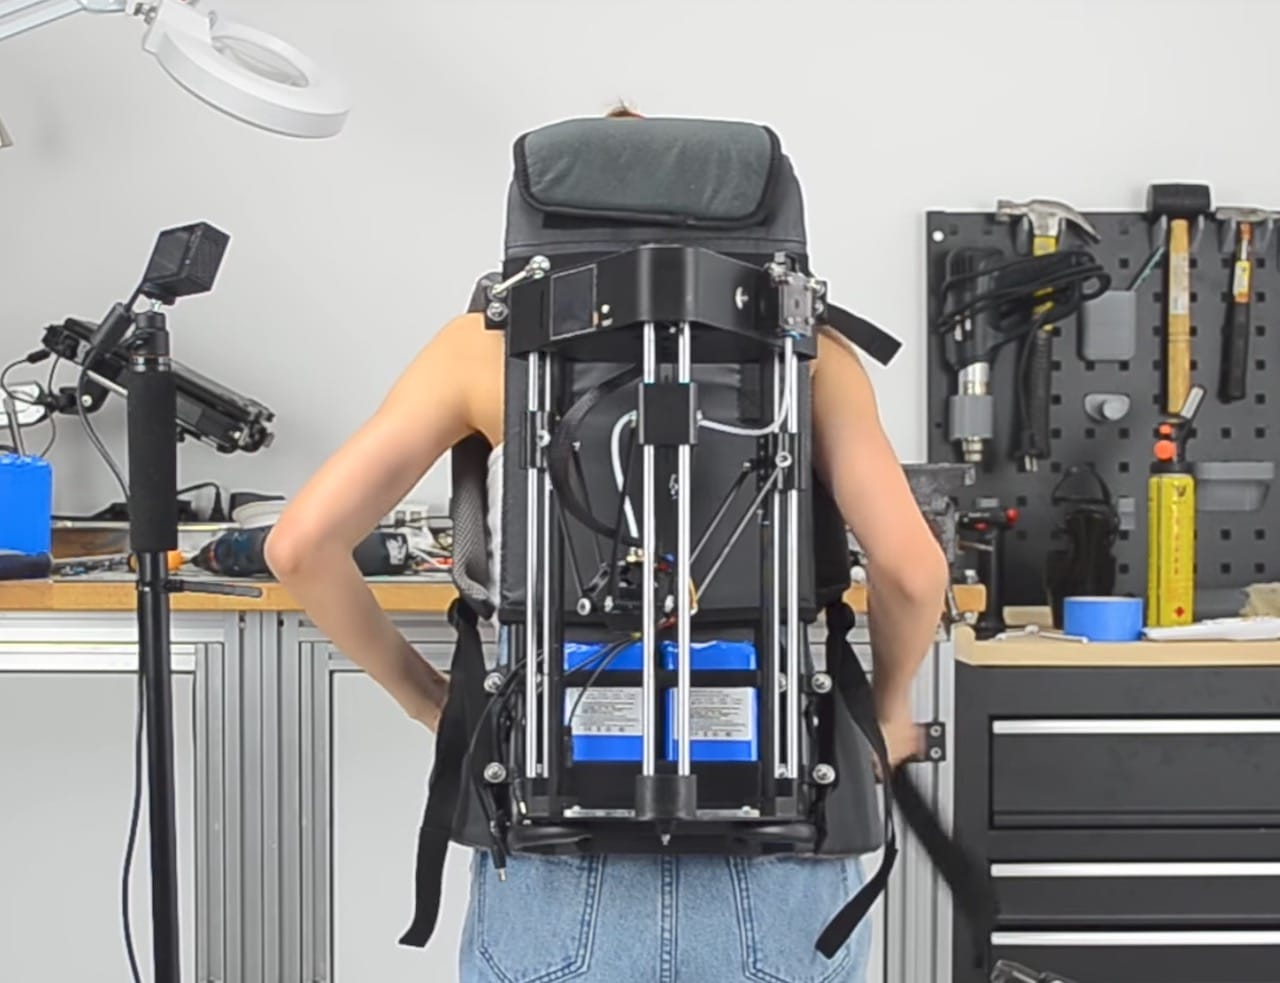 The 3D printer is literally mounted on Naomi Wu's back